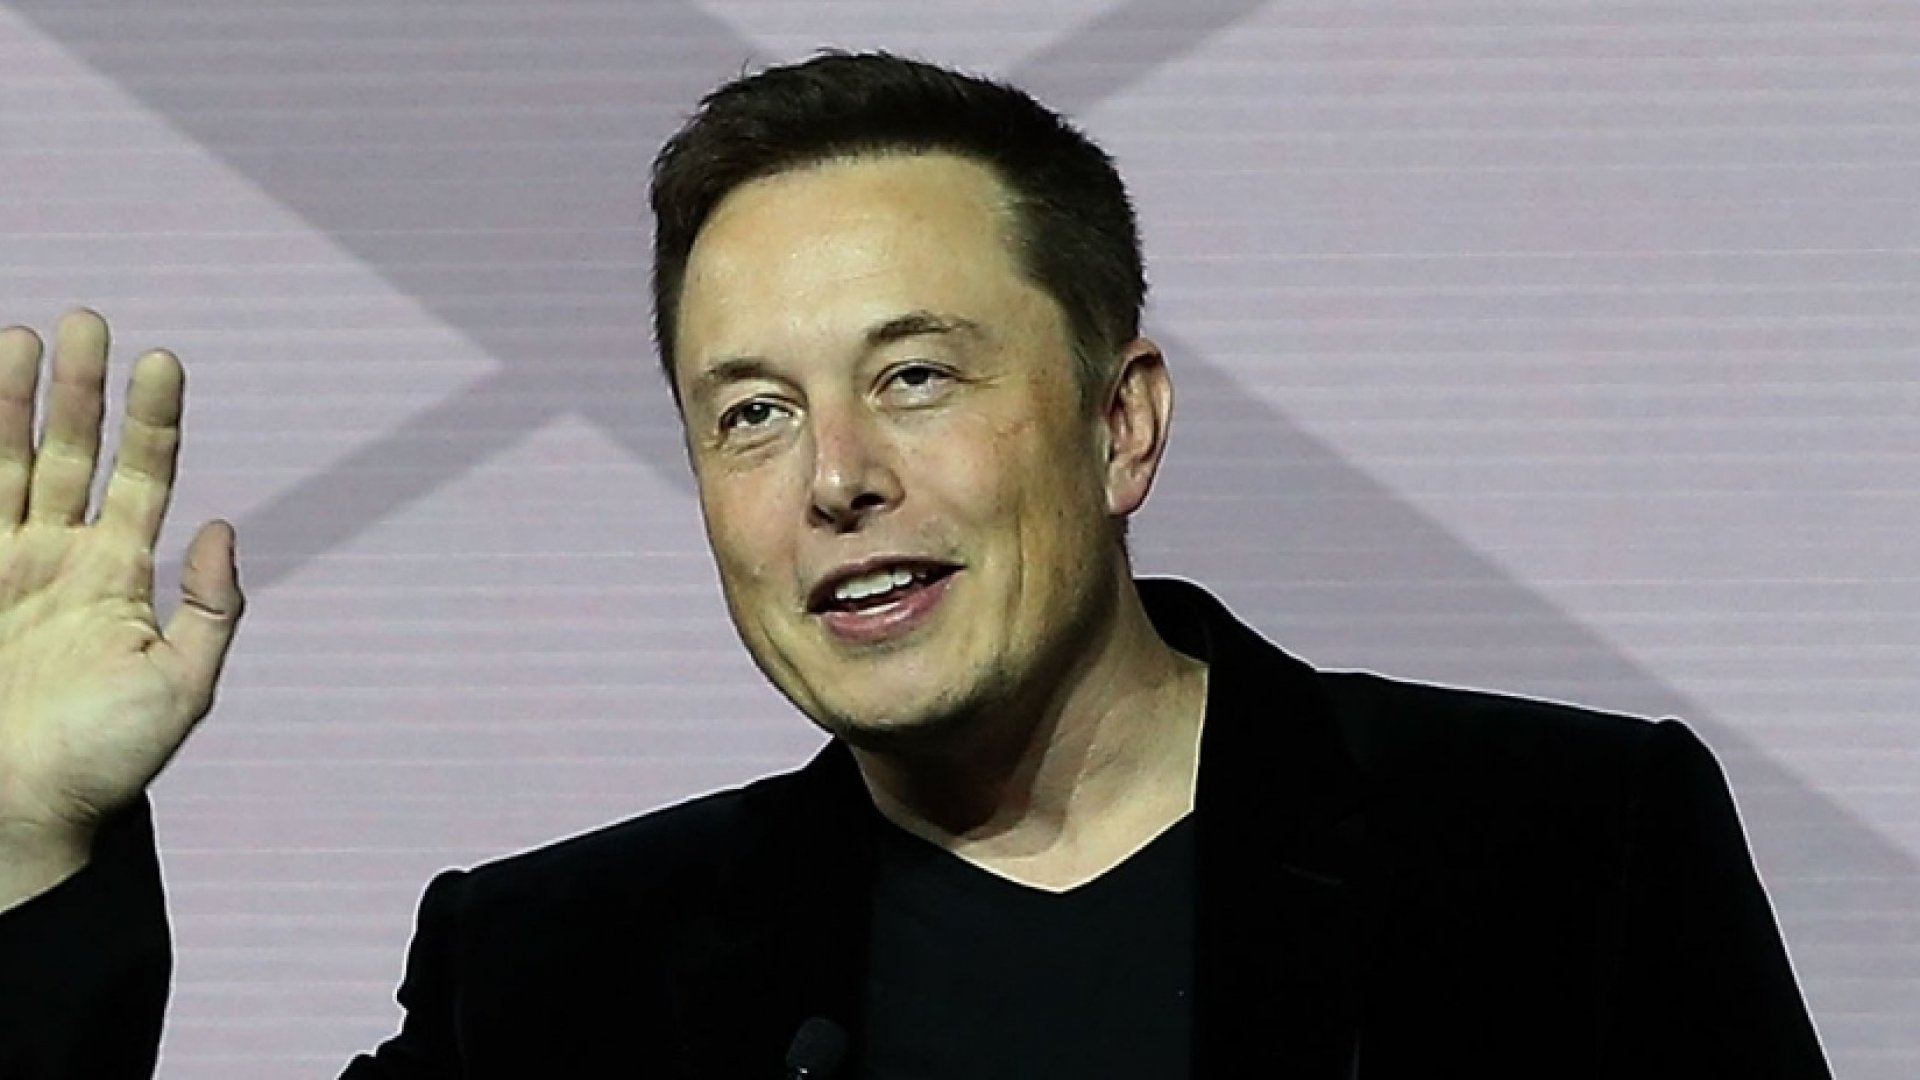 Elon Musk, Eric Schmidt, and Other Influencers Tense Over Artificial Intelligence and the Right Way Forward